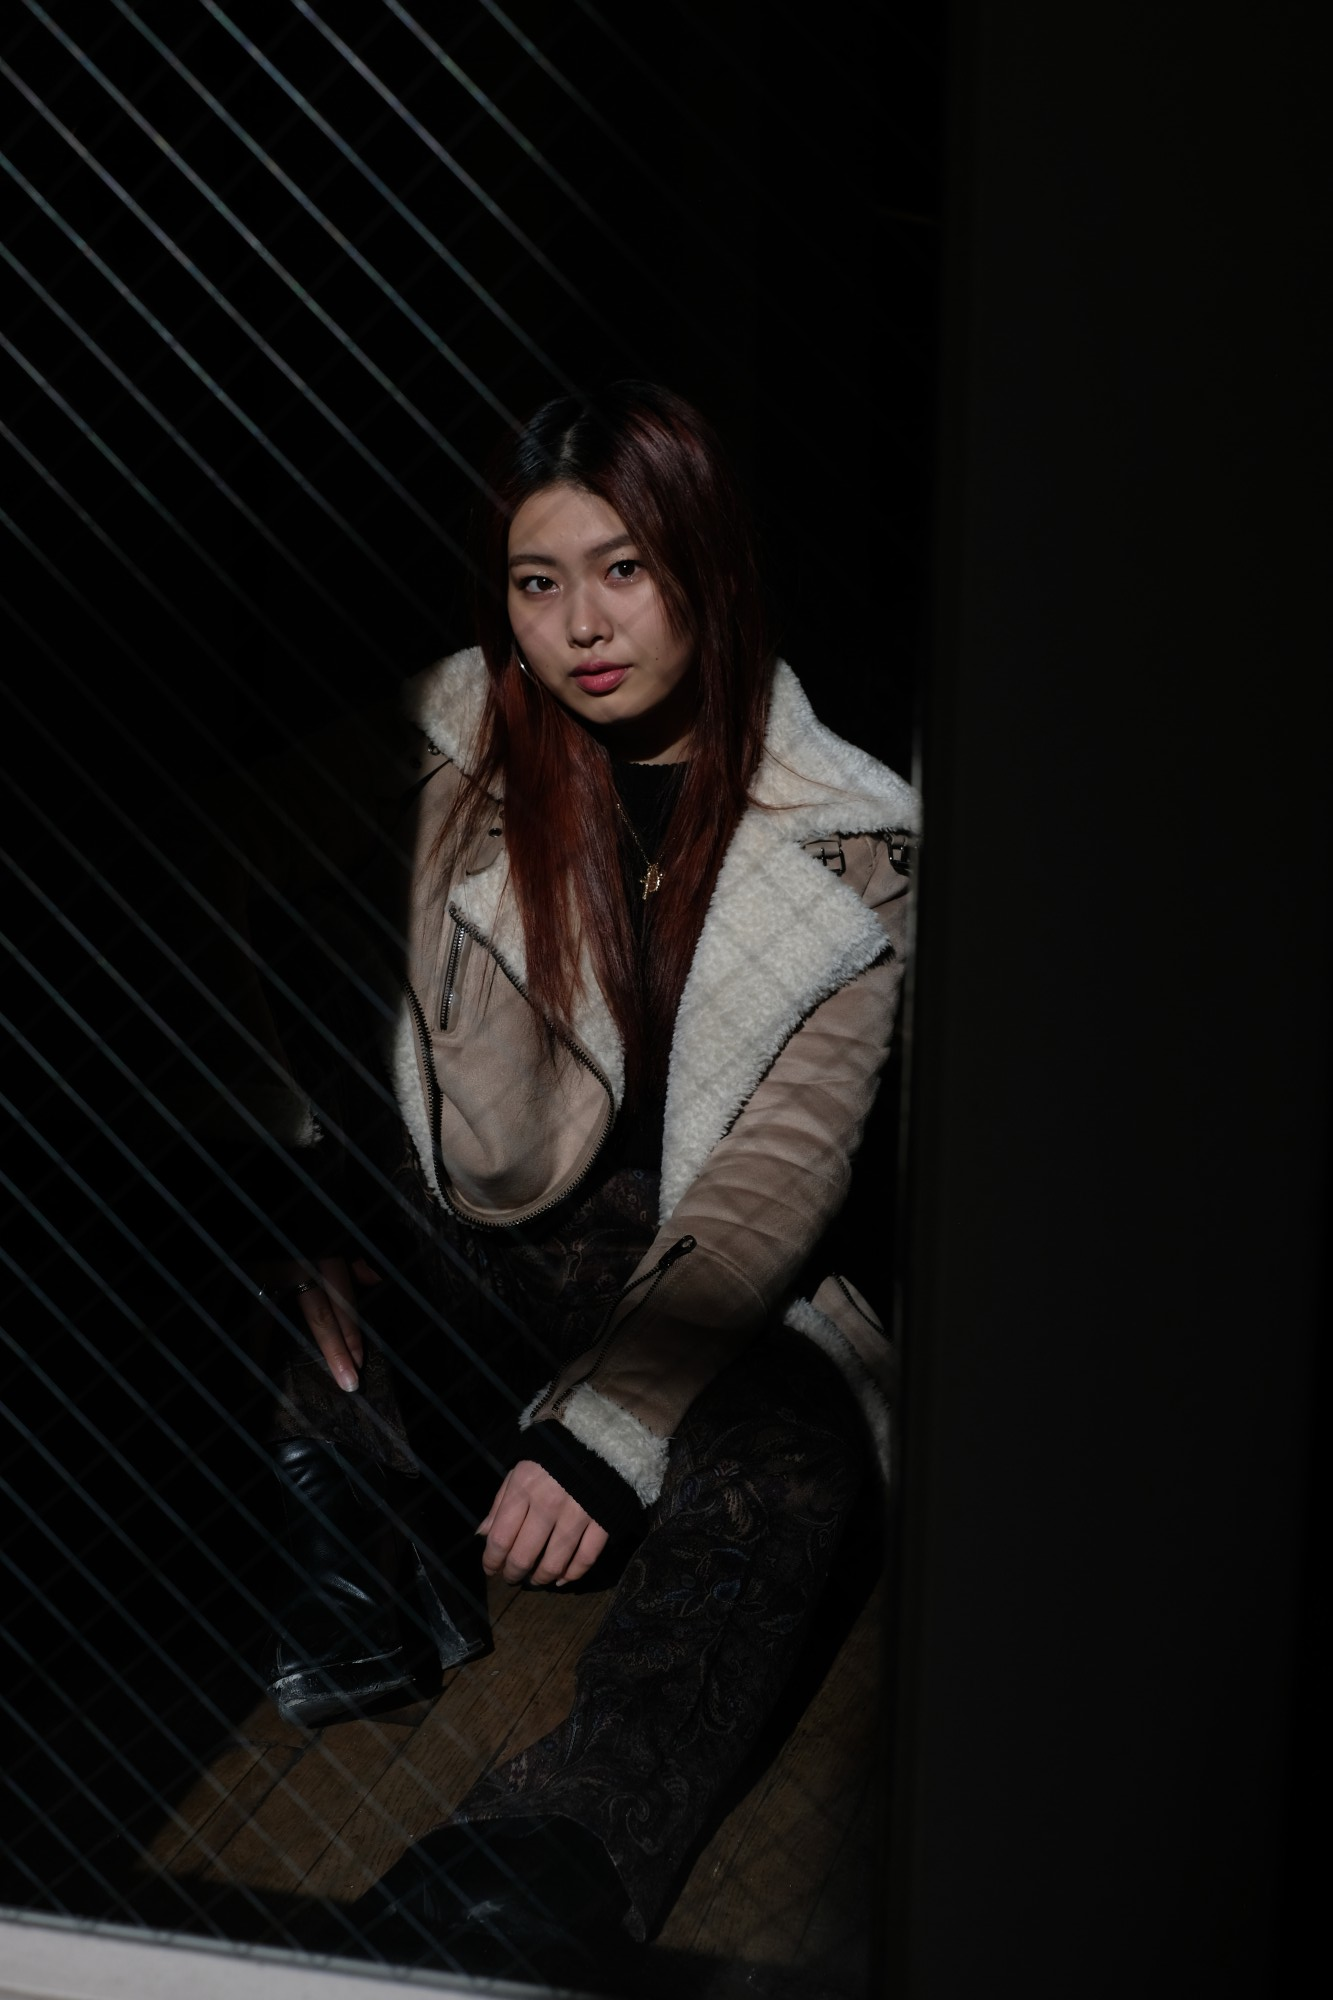 Japanese girl in black outfit and shearling jacket